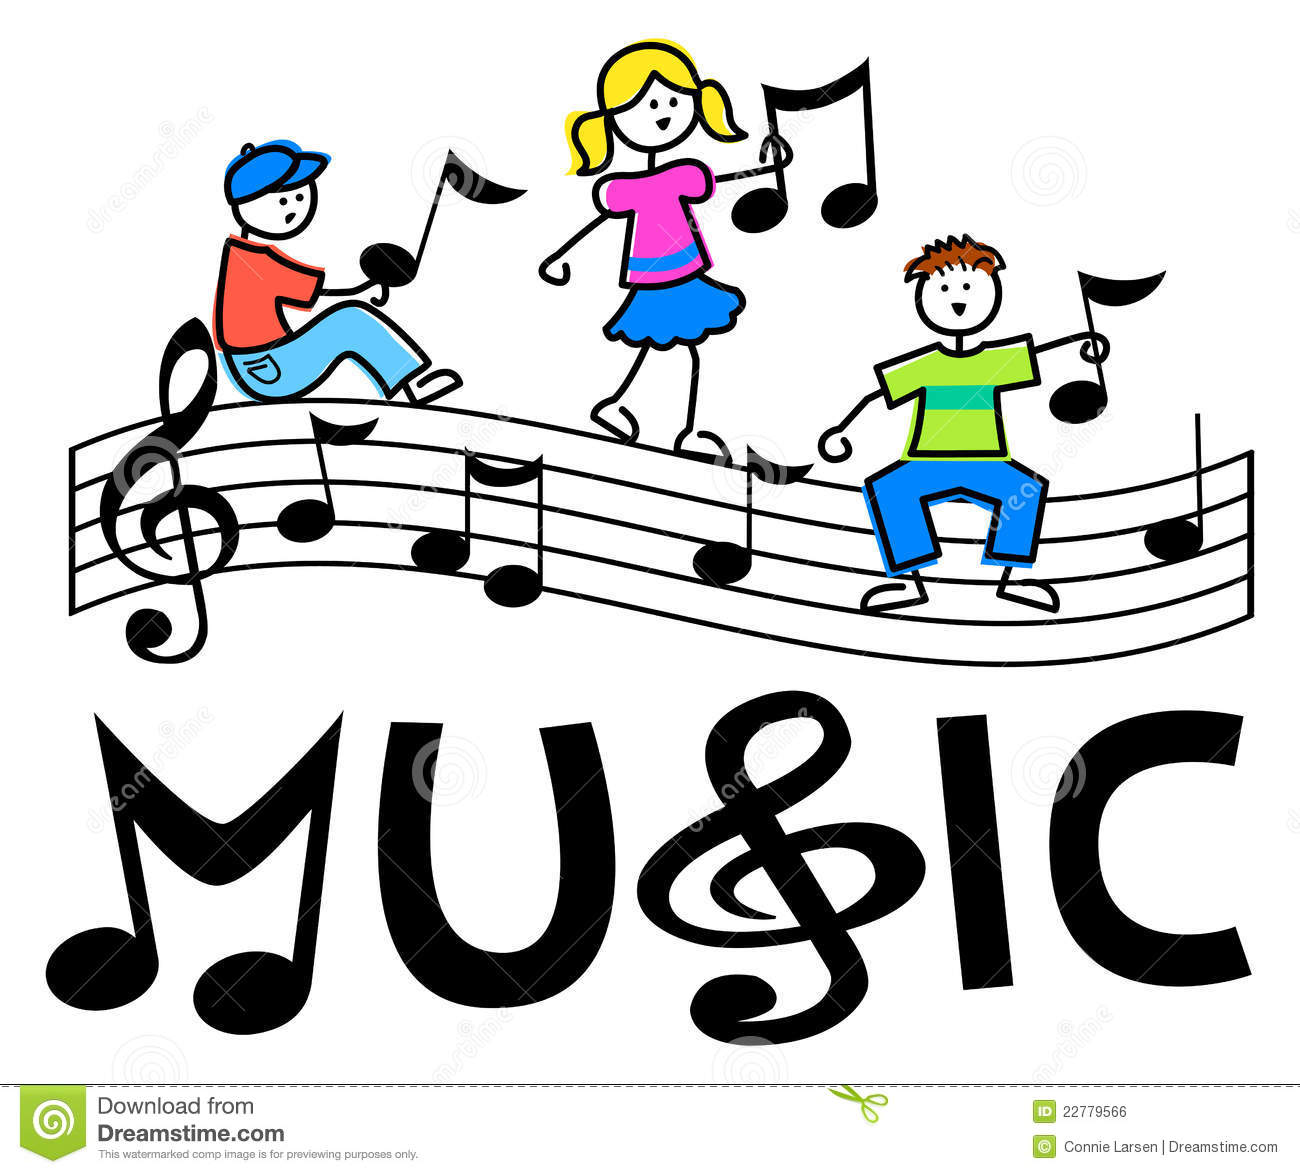 free clipart music notes at getdrawings com free for personal use rh getdrawings com free music clipart and images free music clipart images